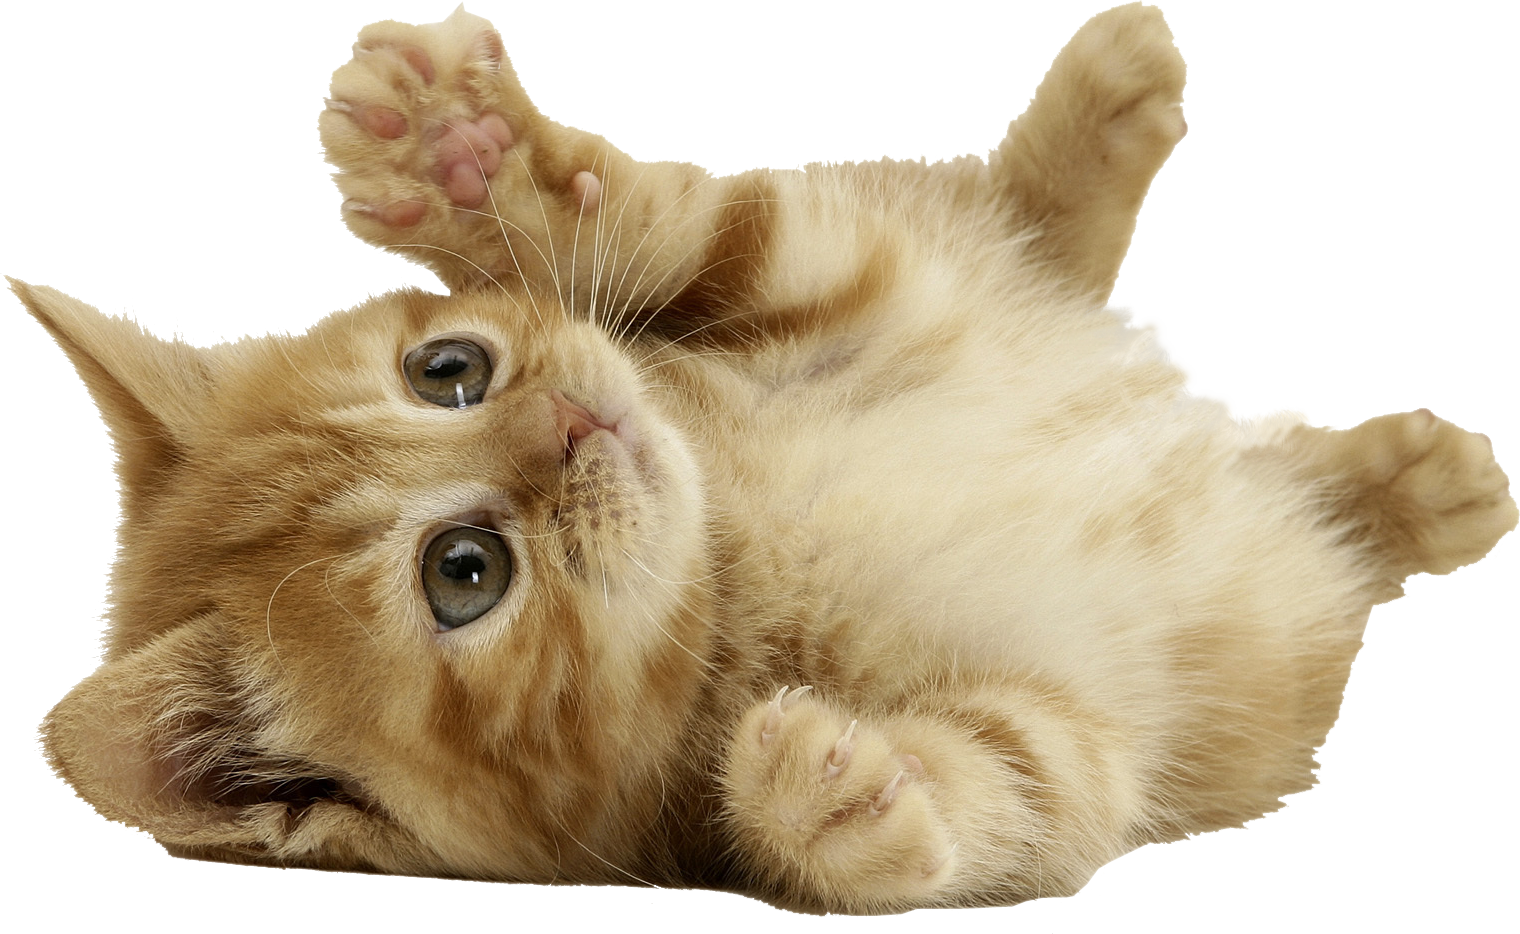 Pin By Dlpng On Cat Png Cute Baby Cats 1553700 Png Images Pngio